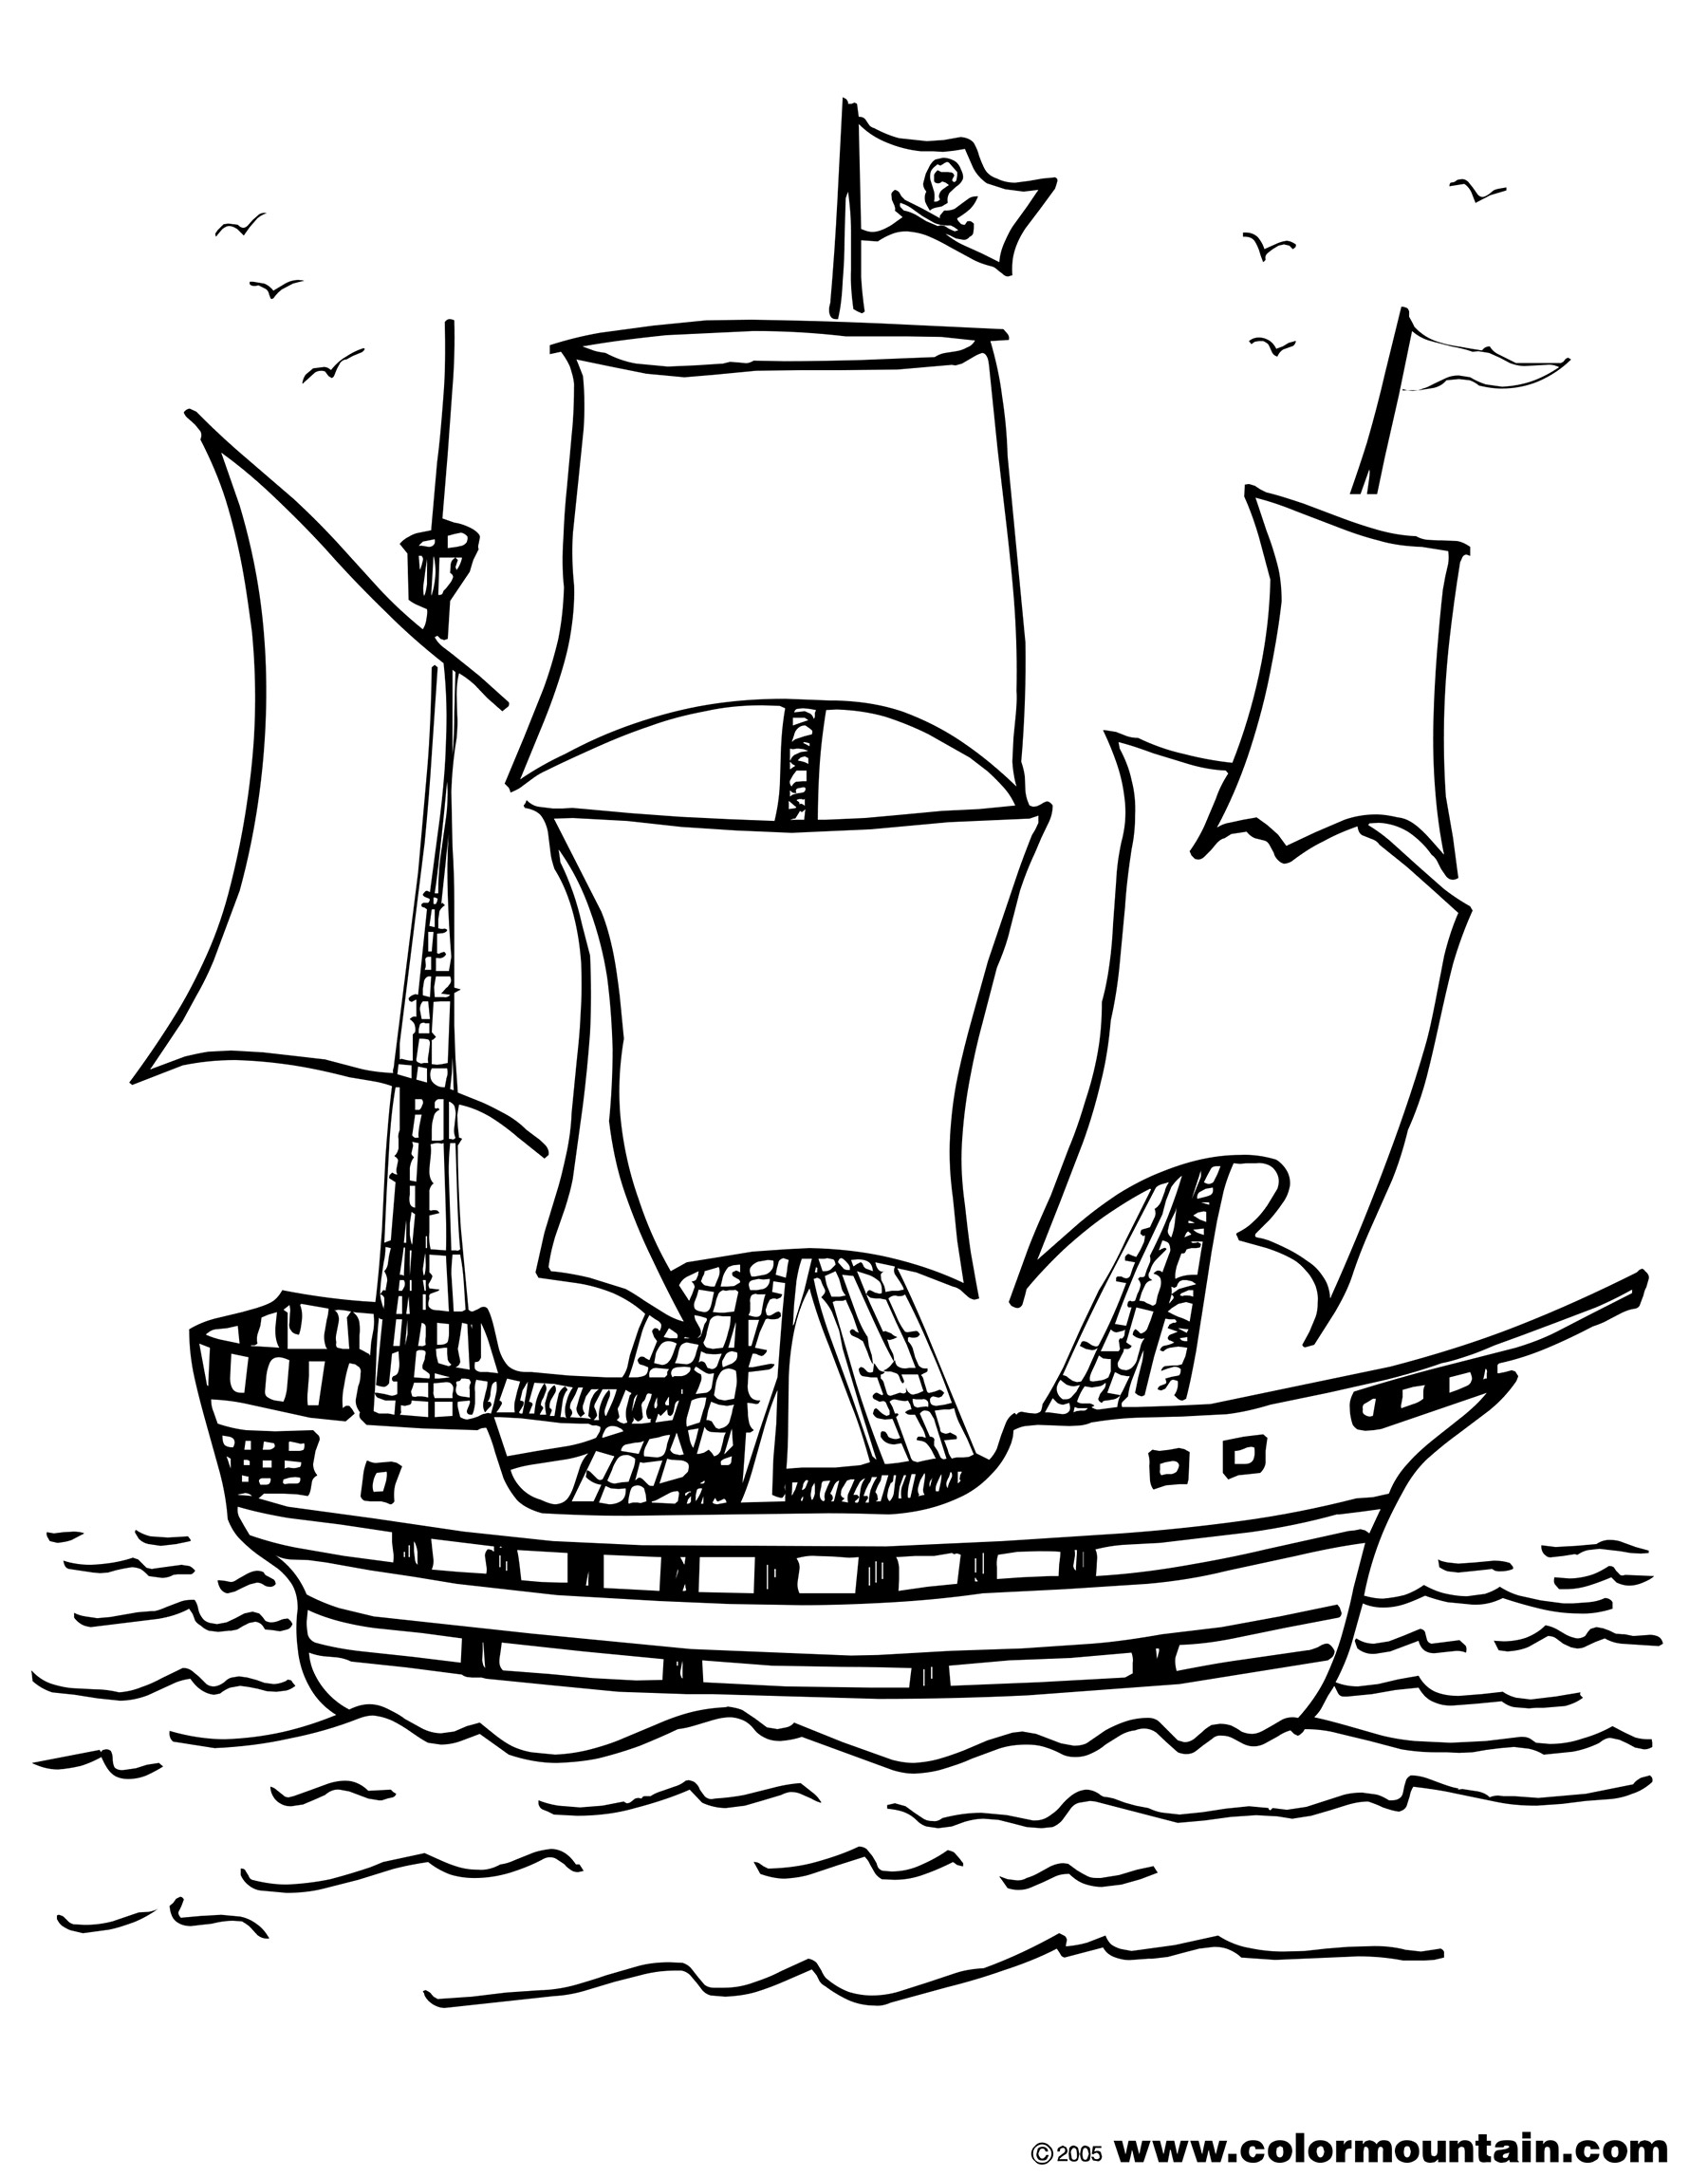 ship coloring page ship coloring pages coloring pages to download and print ship page coloring